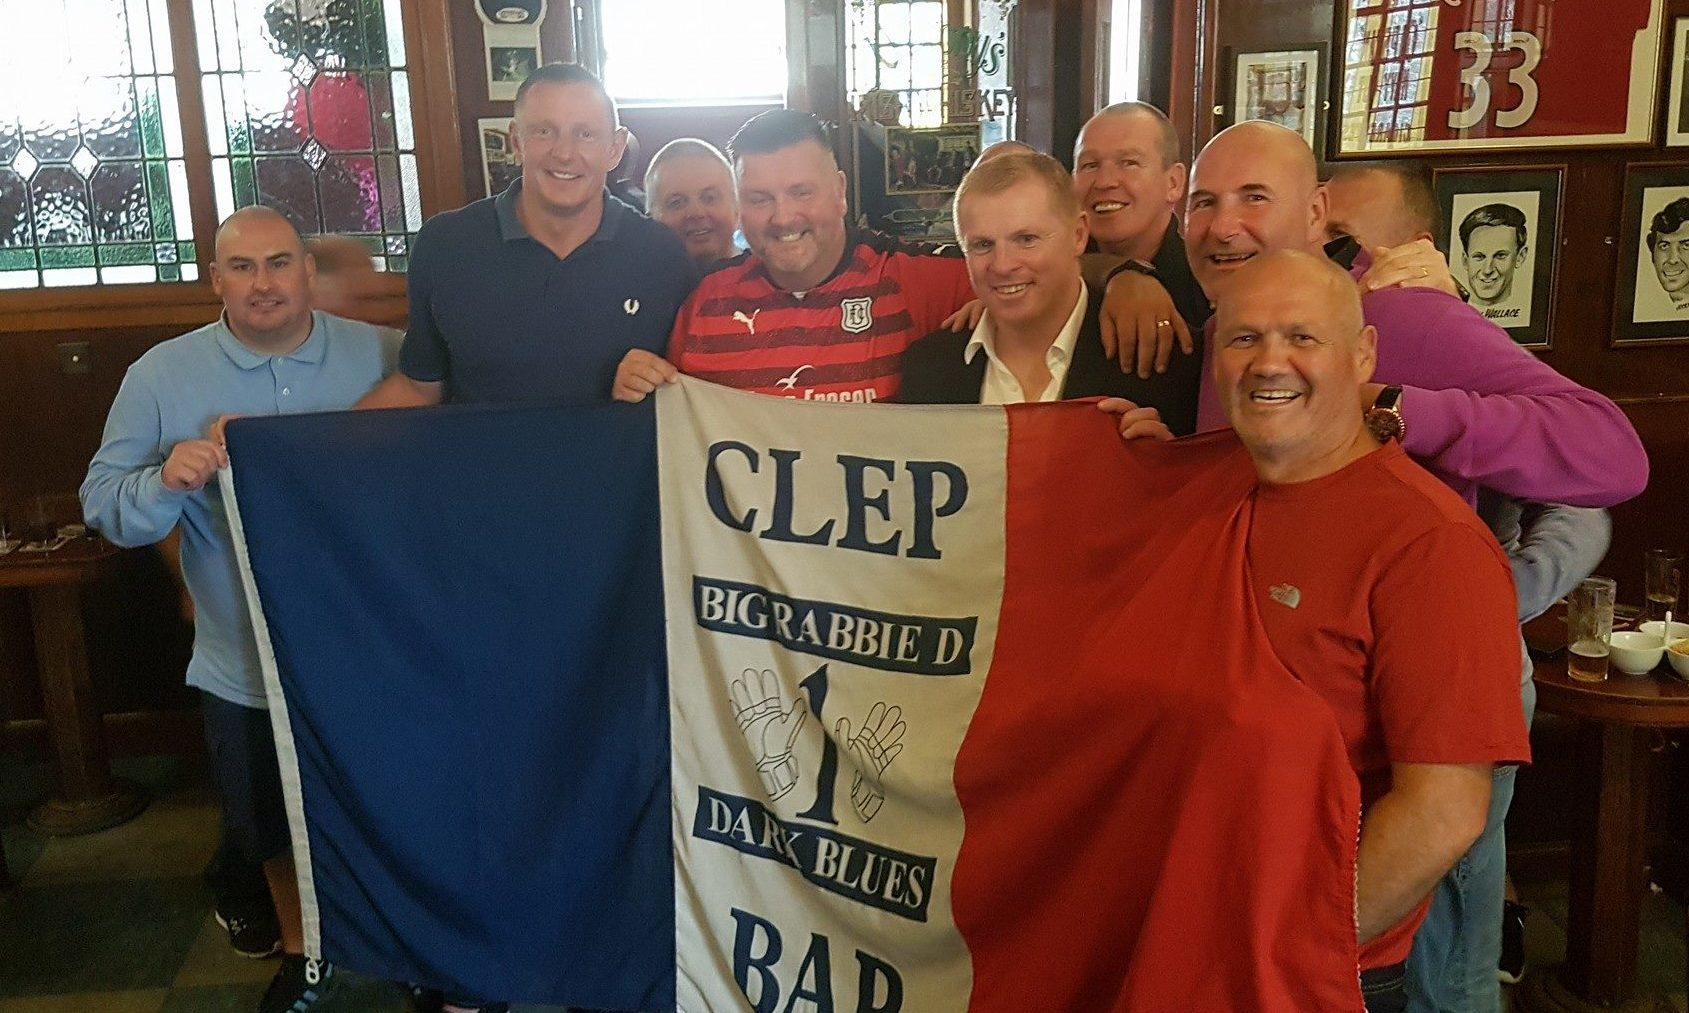 Neil Lennon with members of the Big Rabbie D Dark Blues and Rab Douglas. Gary Knight is to the immediate left of Lennon.